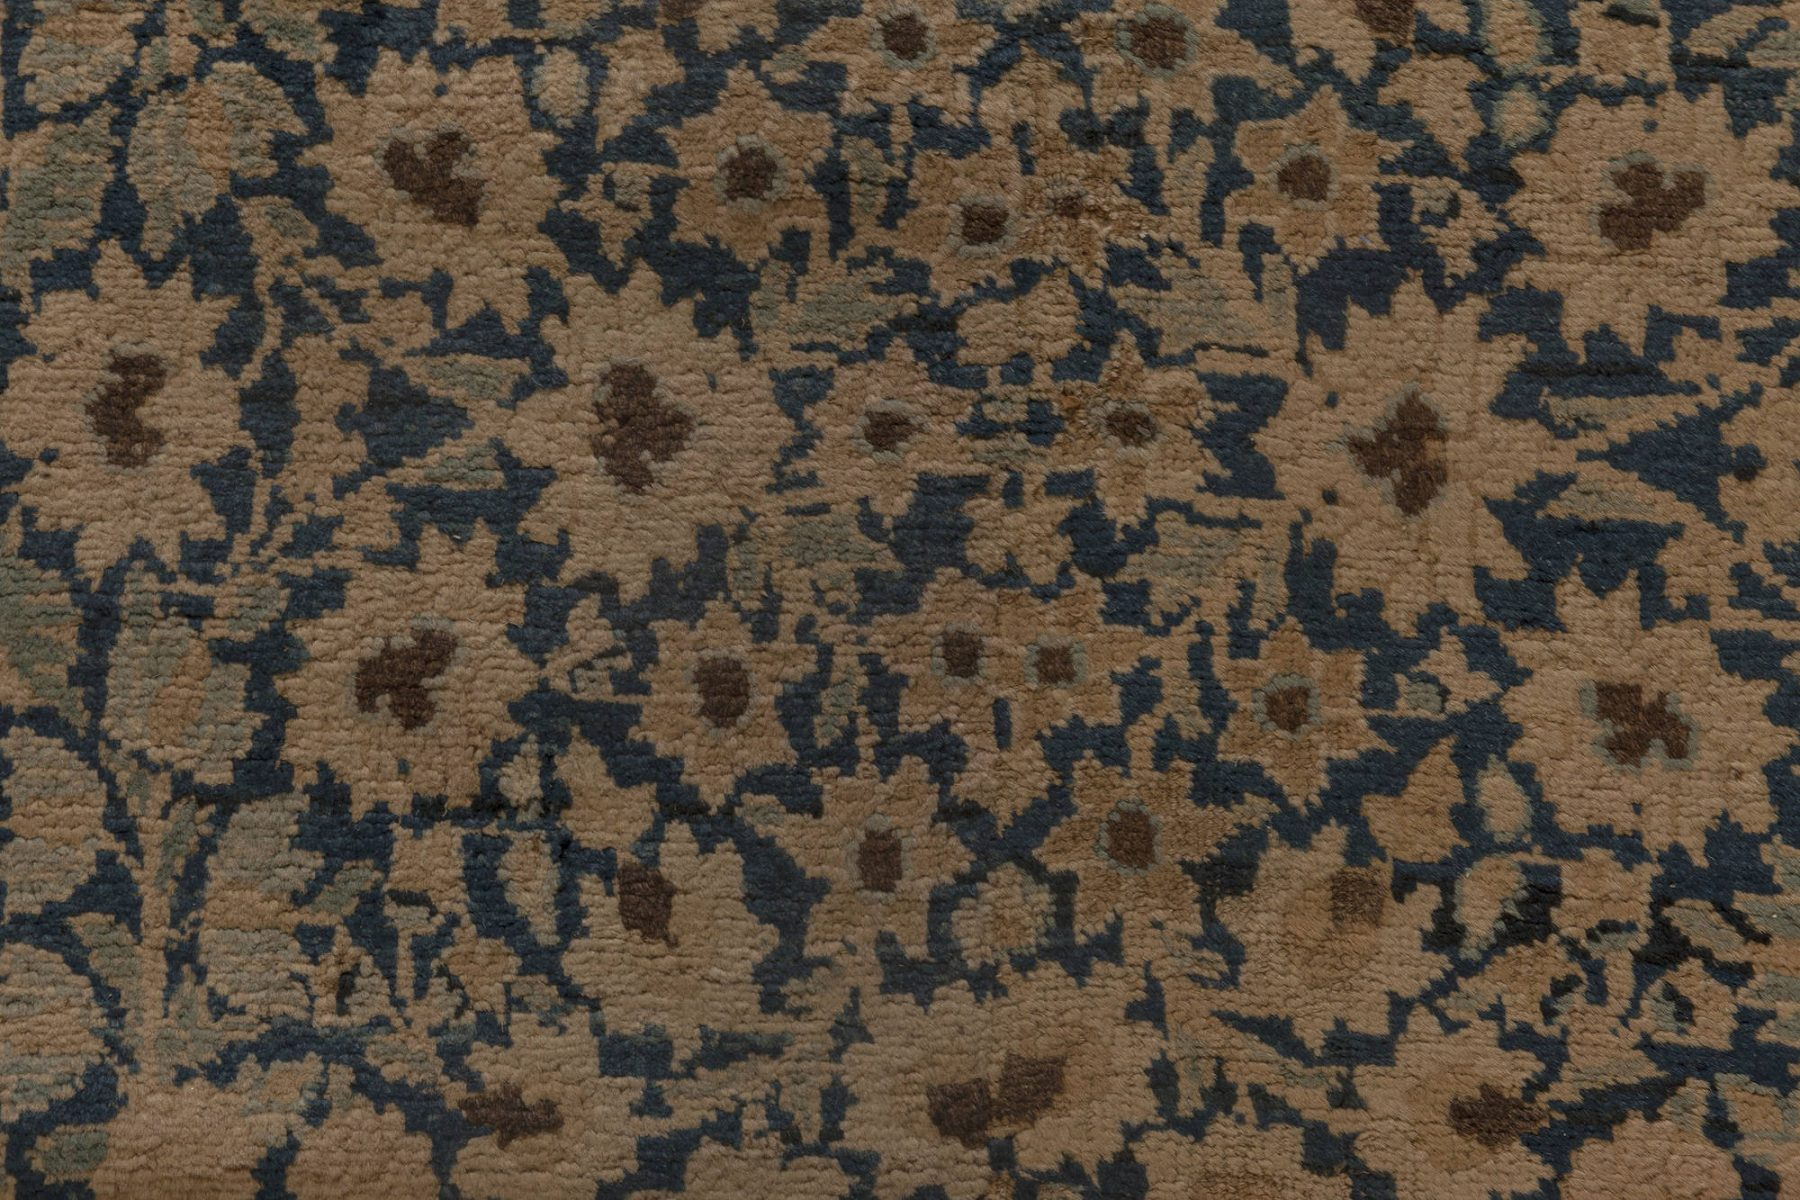 Kirman Indigo Blue, Beige & Brown Handwoven Wool Runner BB6915